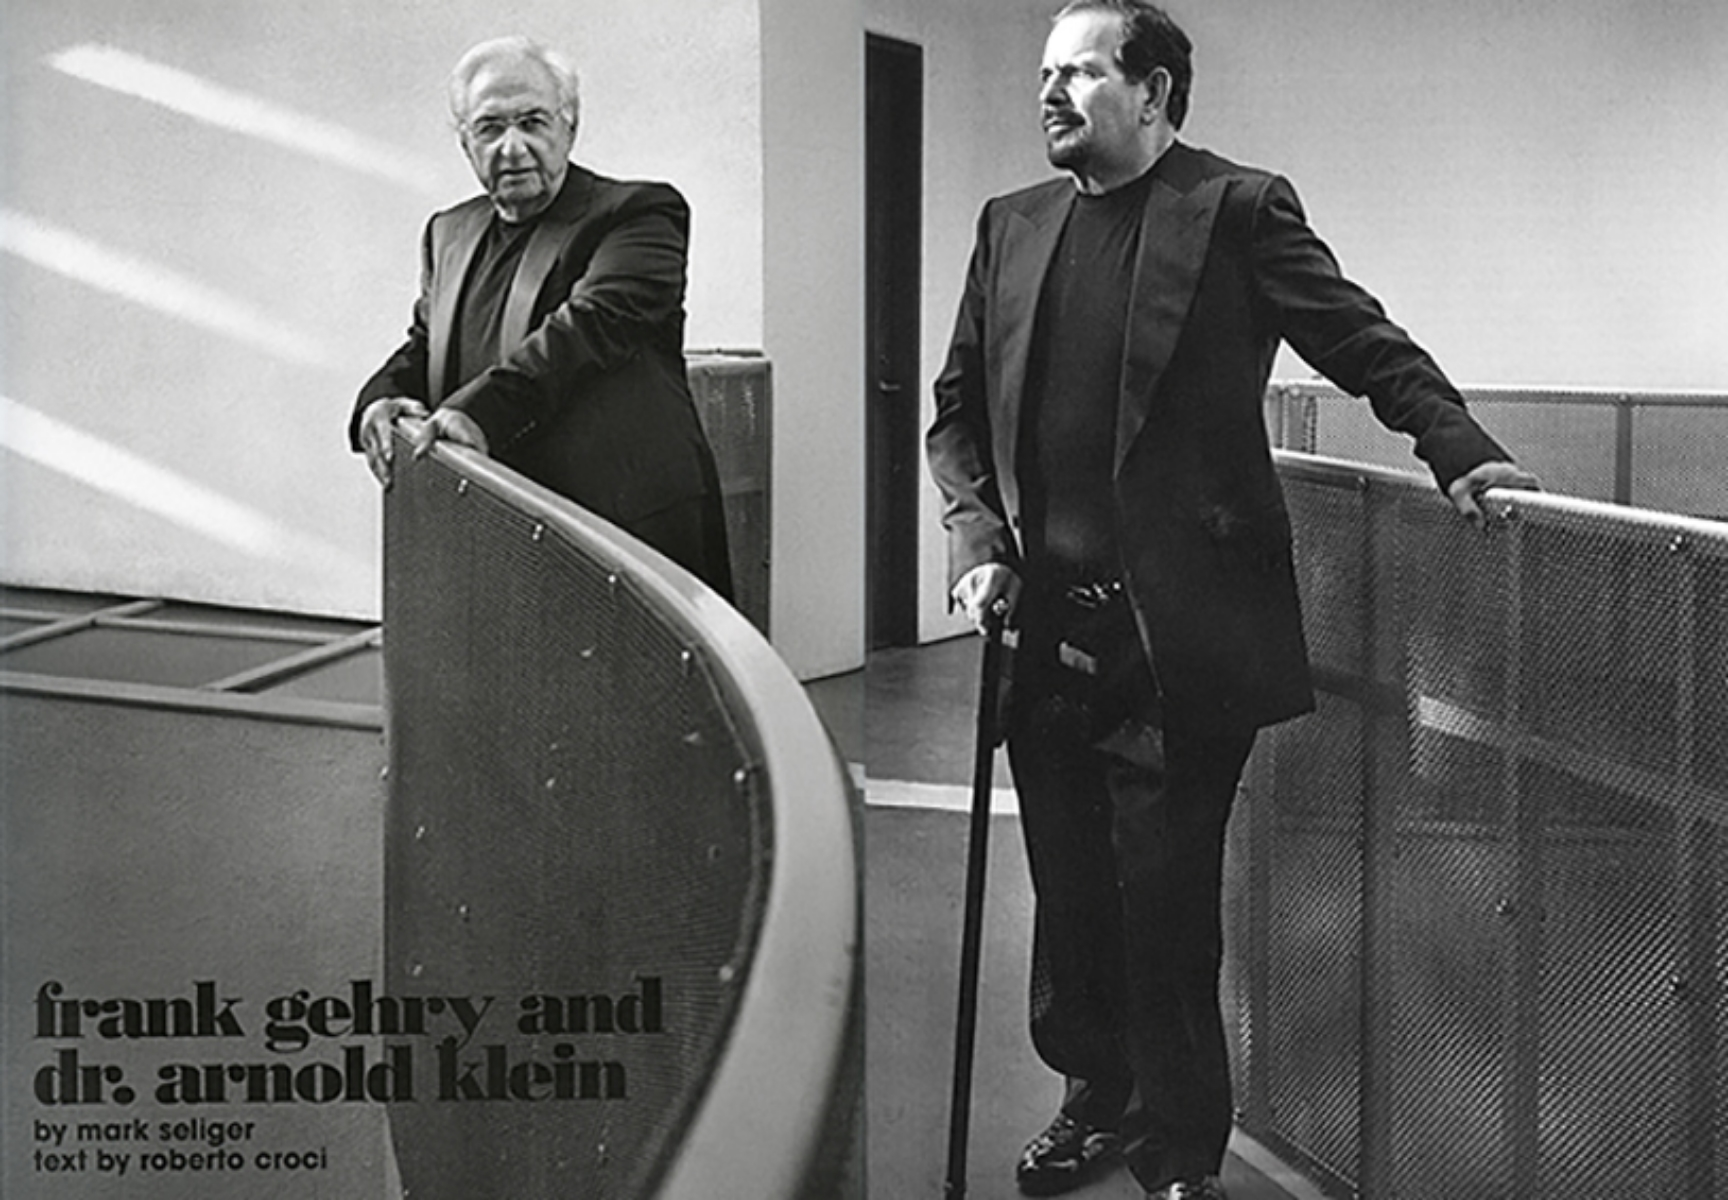 FRANK GEHRY & DR. ARNOLD KLEIN